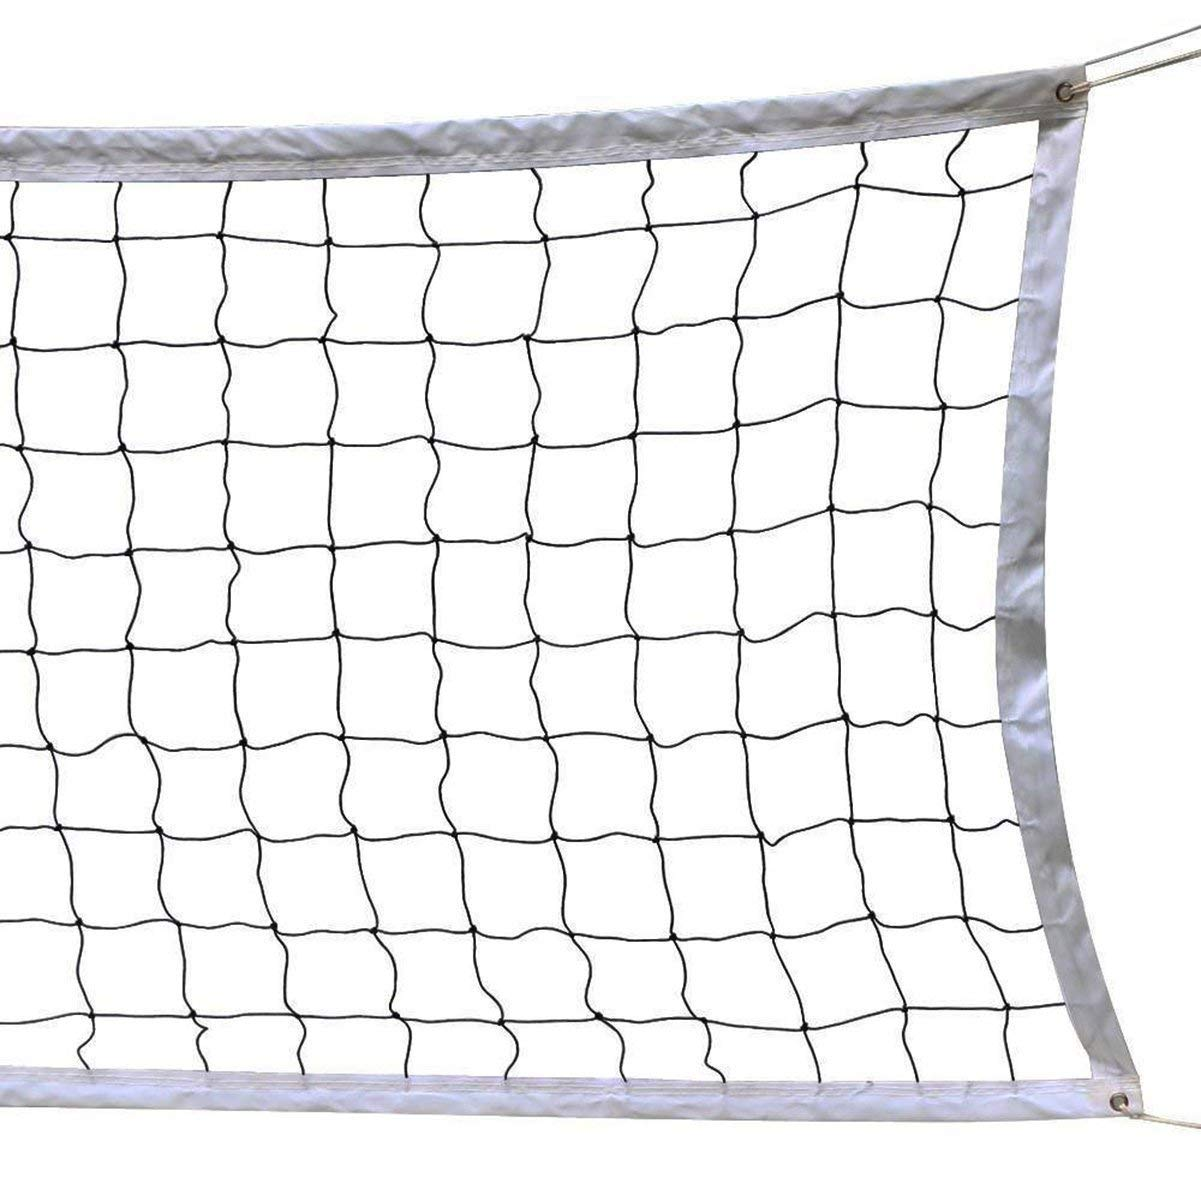 DHAO Volleyball Net Portable Sports Net for Volleyball Tennis Badminton at Beach Swimming Pool Garden Schoolyard Backyard Indoor and Outdoor Games Net(32 FT x 3 FT)